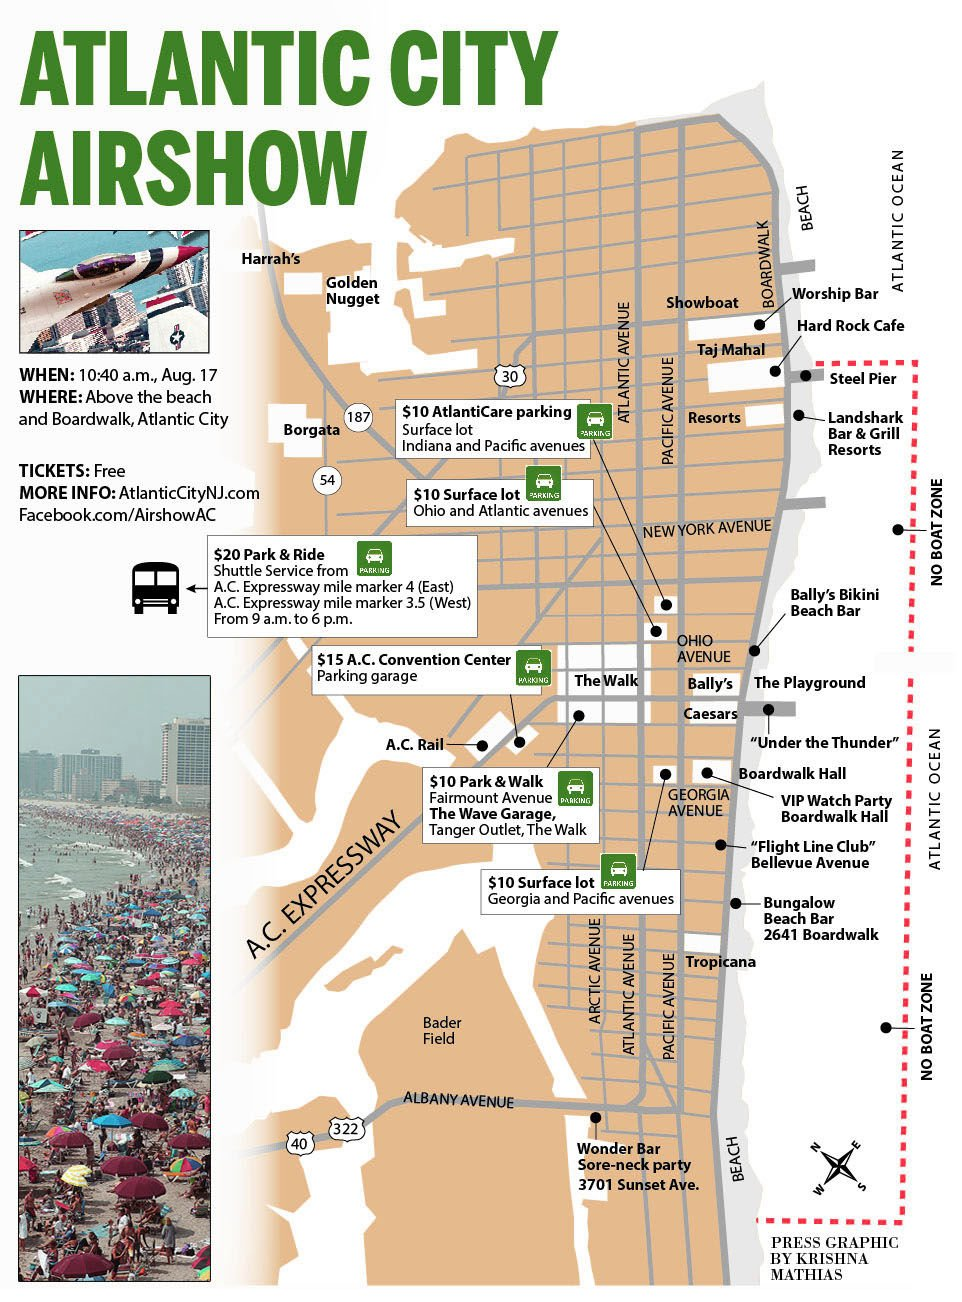 Atlantic City Airshow map 2016